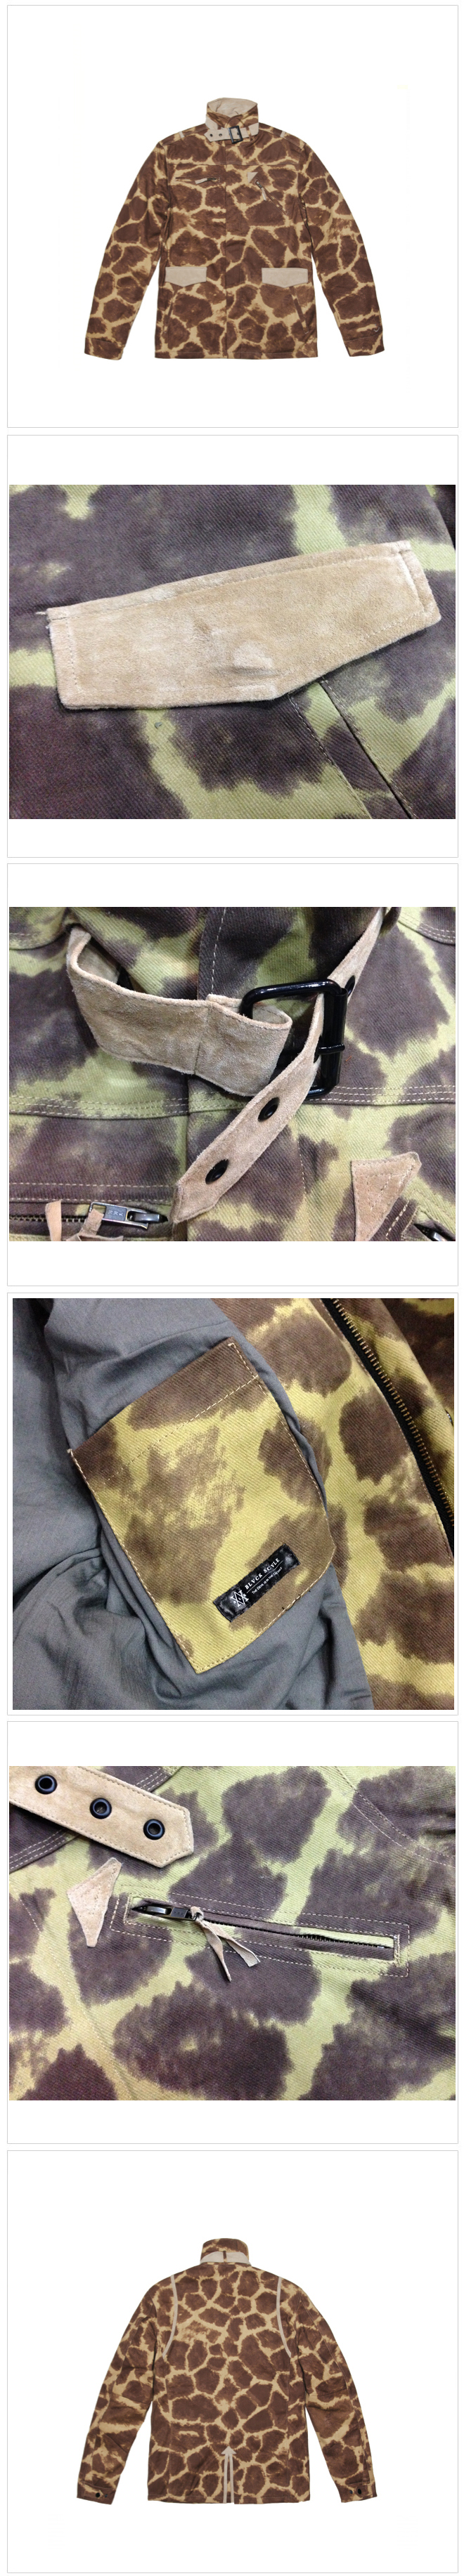 블랙스케일 BLACK SCALE TUT JACKET (CAMO)